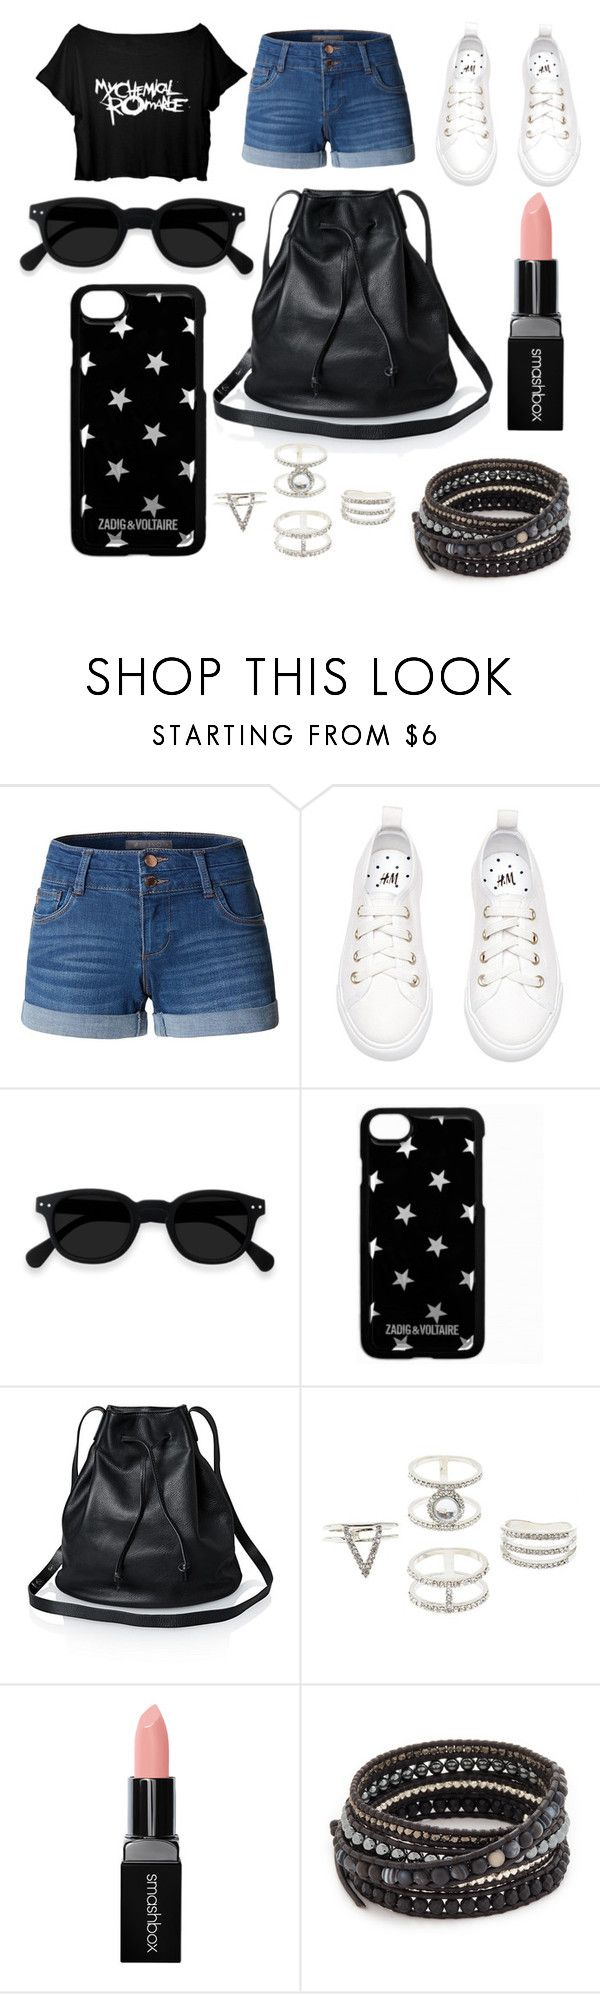 """""""9"""" by thisisalle on Polyvore featuring LE3NO, Zadig & Voltaire, Charlotte Russe, Smashbox and Chan Luu"""